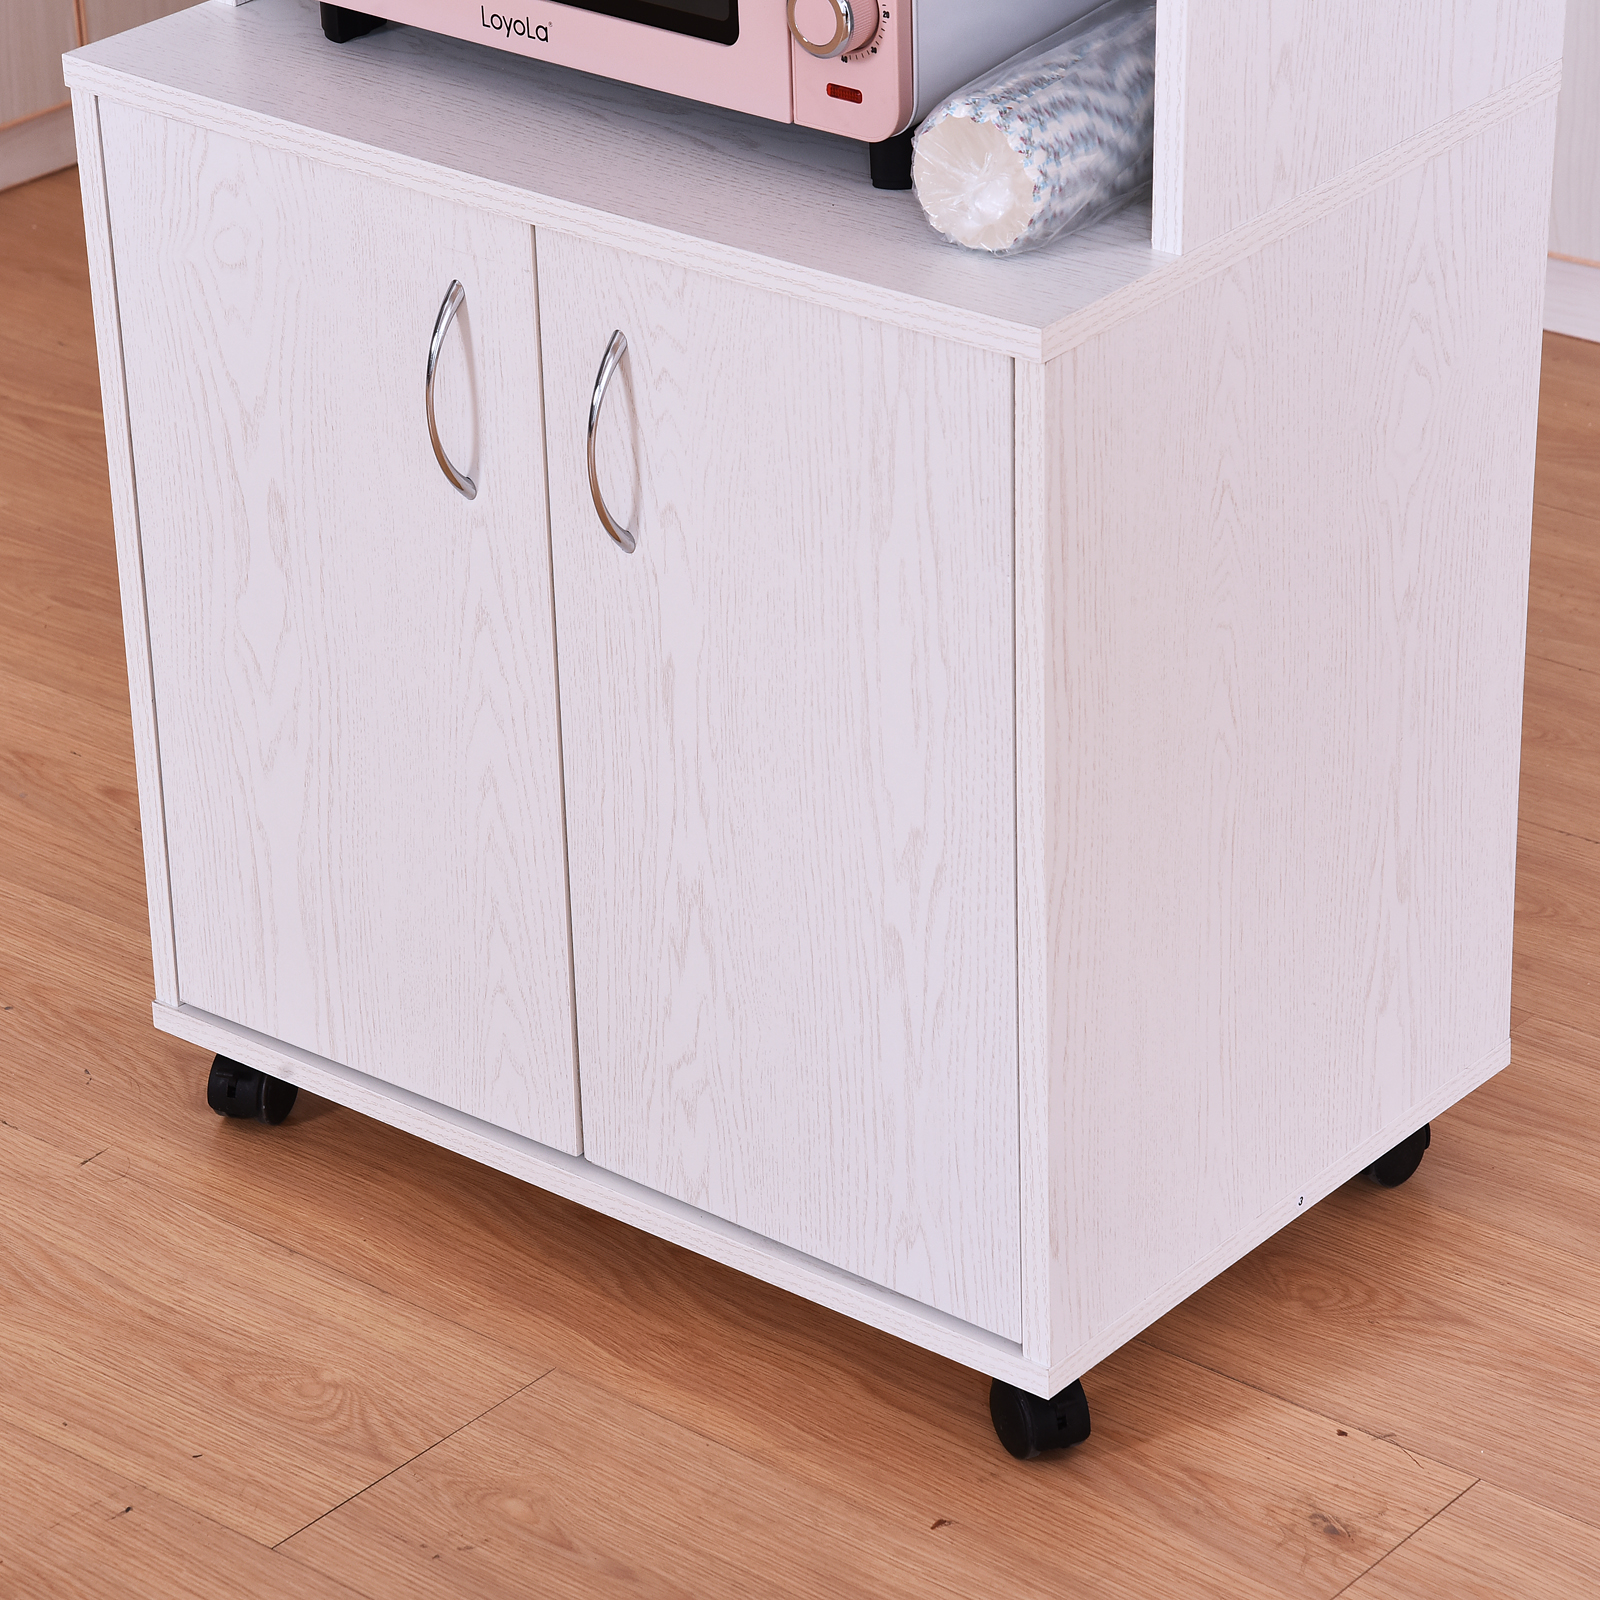 Astounding Details About Rolling Kitchen Trolley Microwave Cart 2 Door Cabinet Storage Shelves W Wheels Home Remodeling Inspirations Propsscottssportslandcom